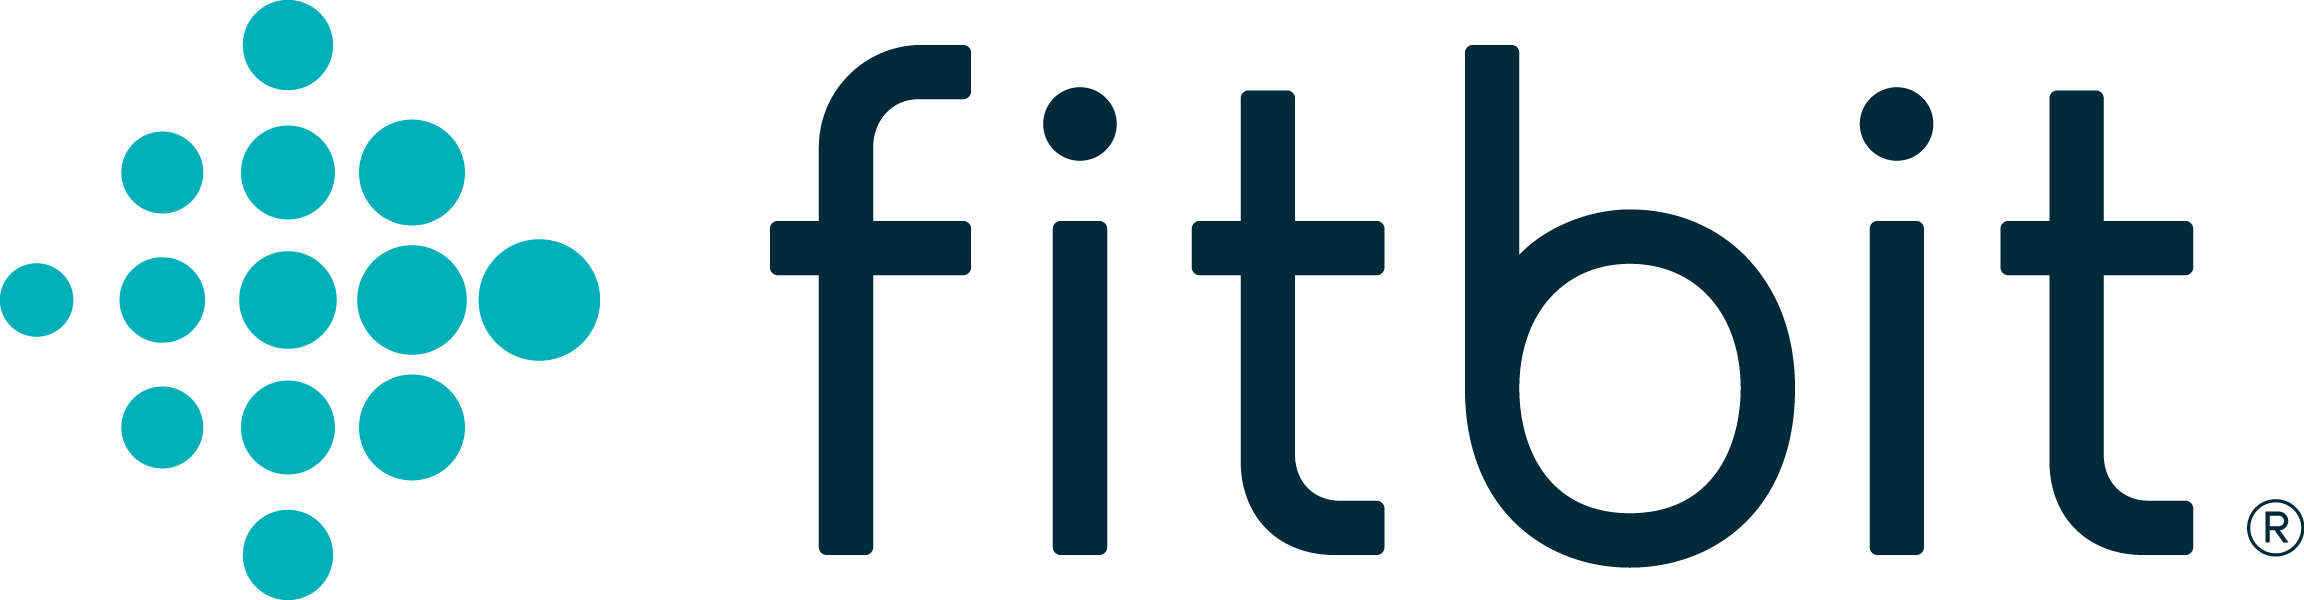 Fitbit (if not set as source)